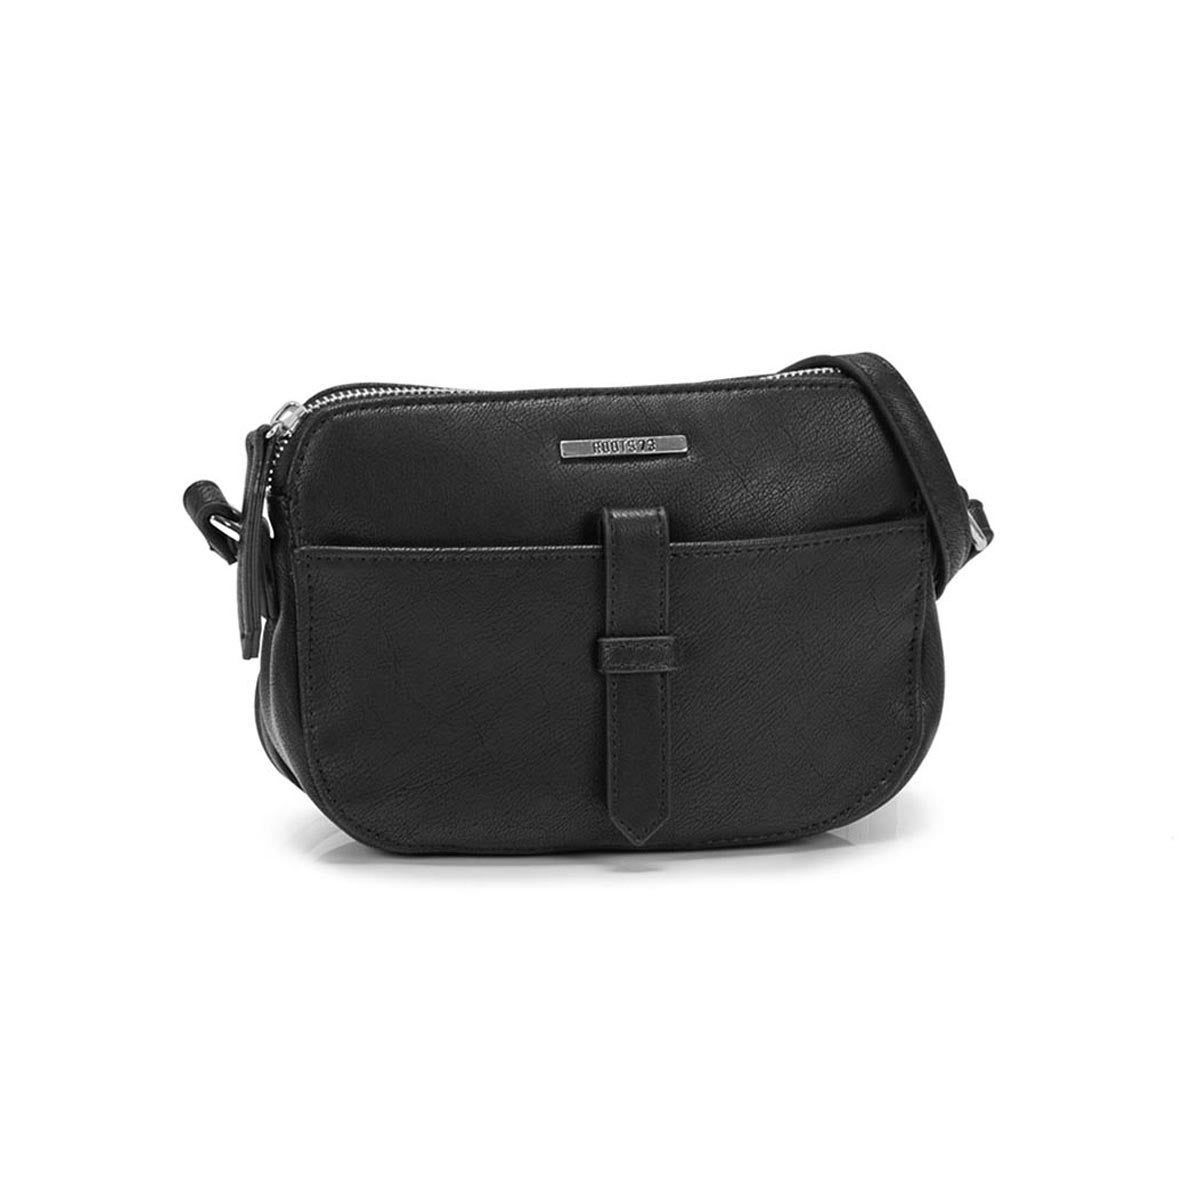 Women's R5356 black mini crossbody bag